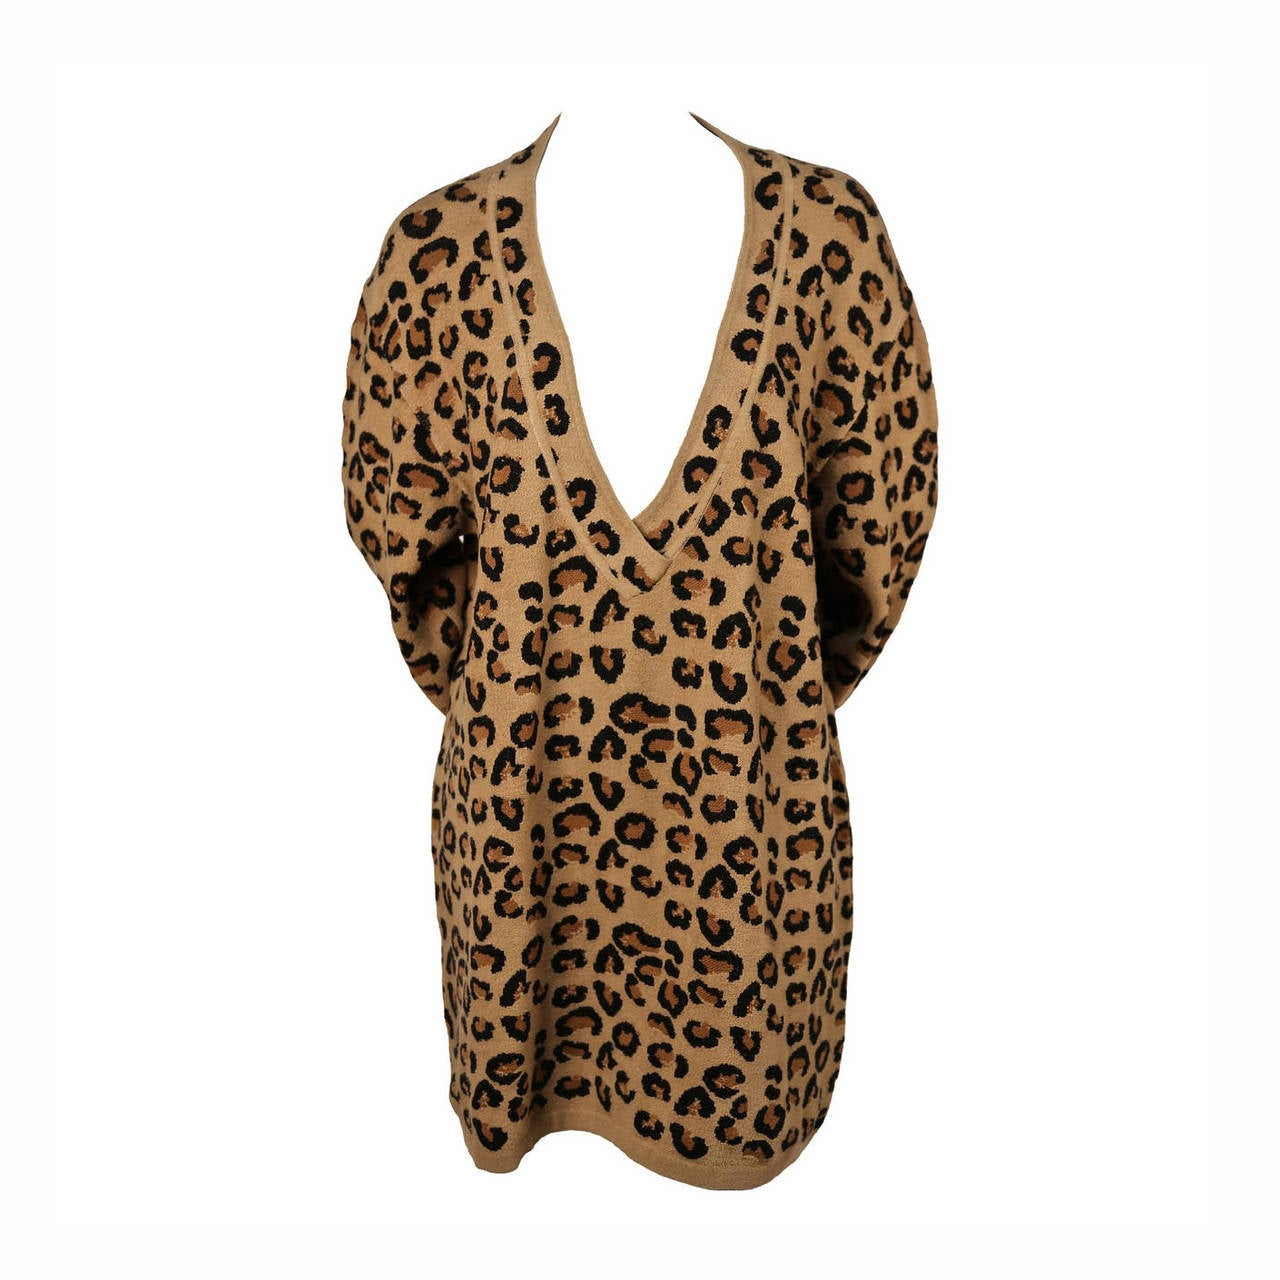 1991 AZZEDINE ALAIA oversized leopard V-neck dress 1